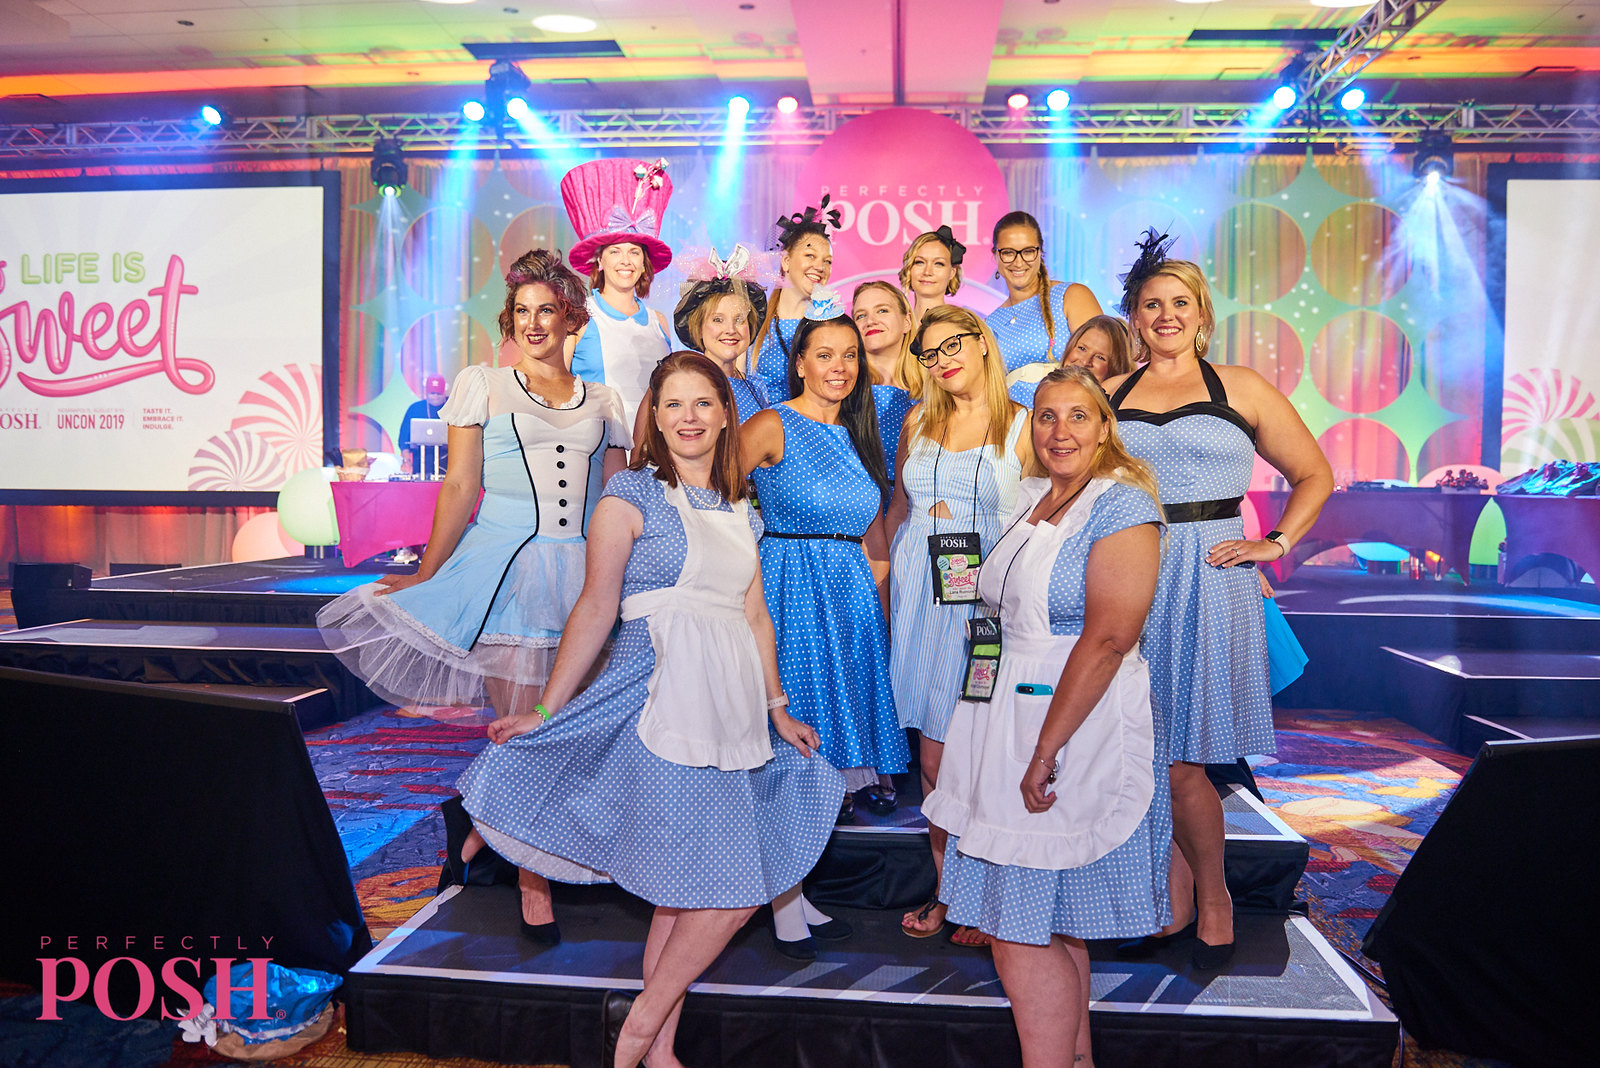 Perfectly Posh Influencers dress as Alice in Wonderland at the Mad Hatter Tea Party at UnCon 2019